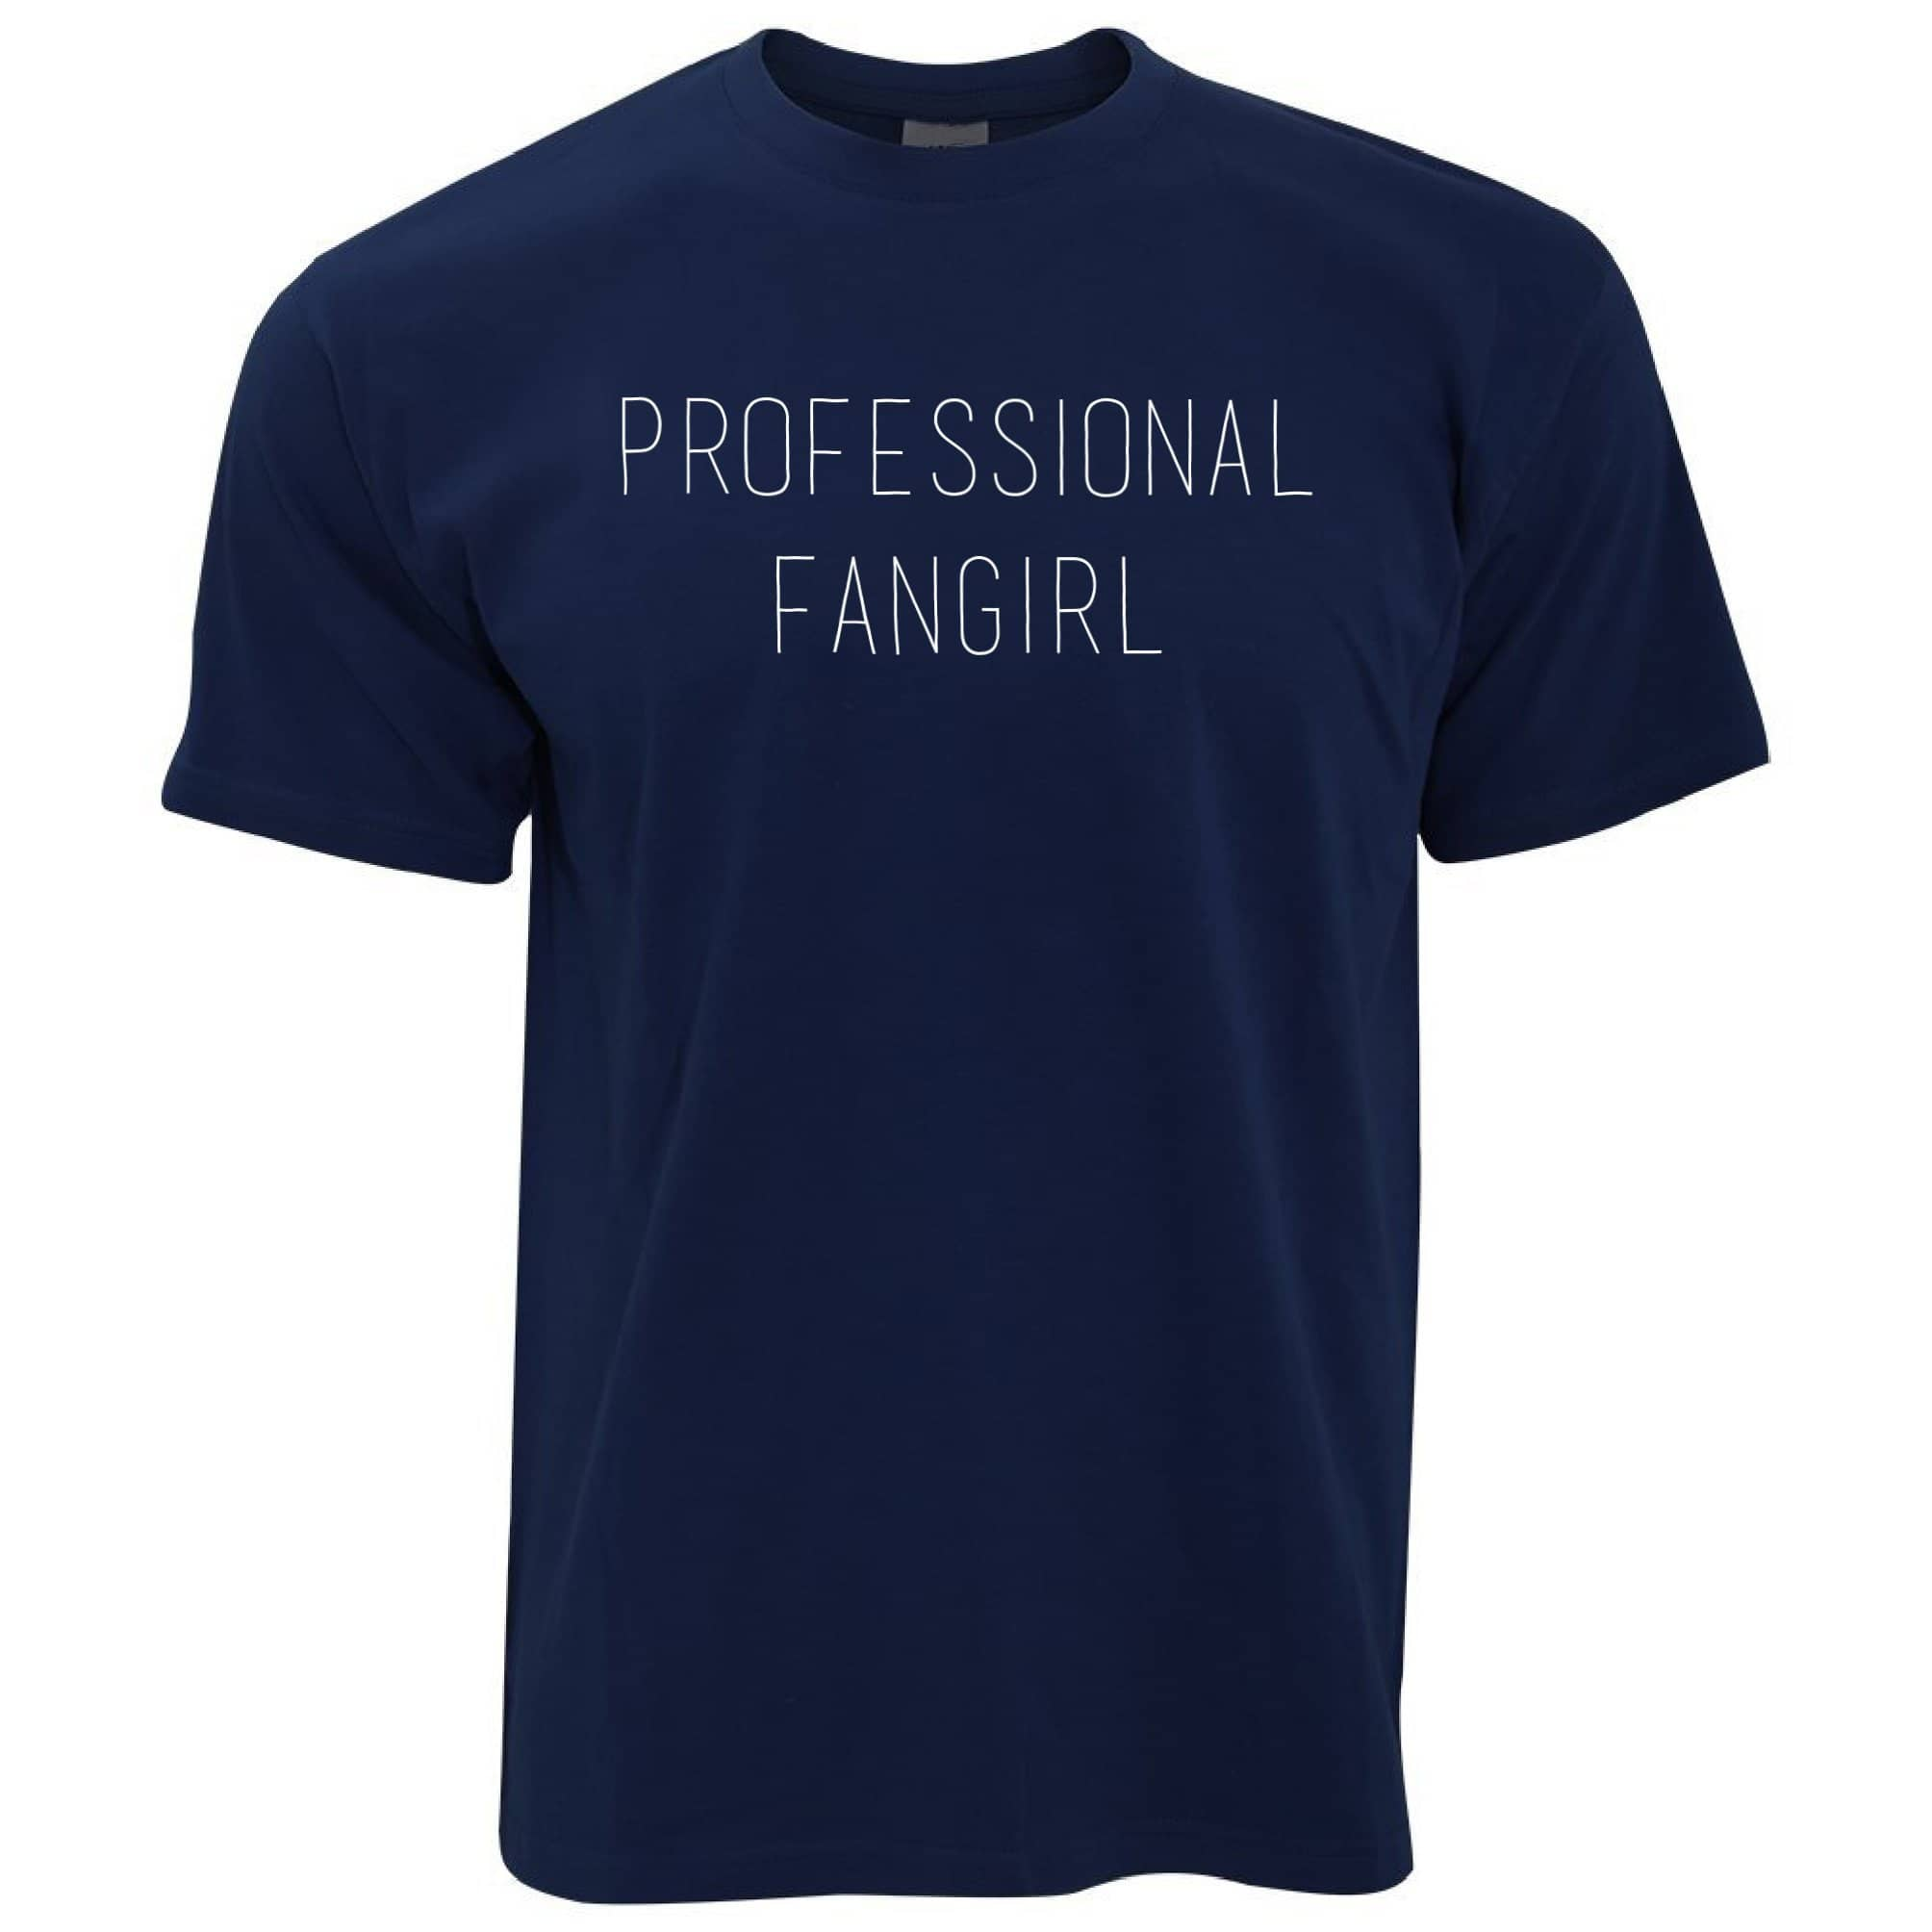 Novelty Joke Slogan T Shirt Professional Fangirl